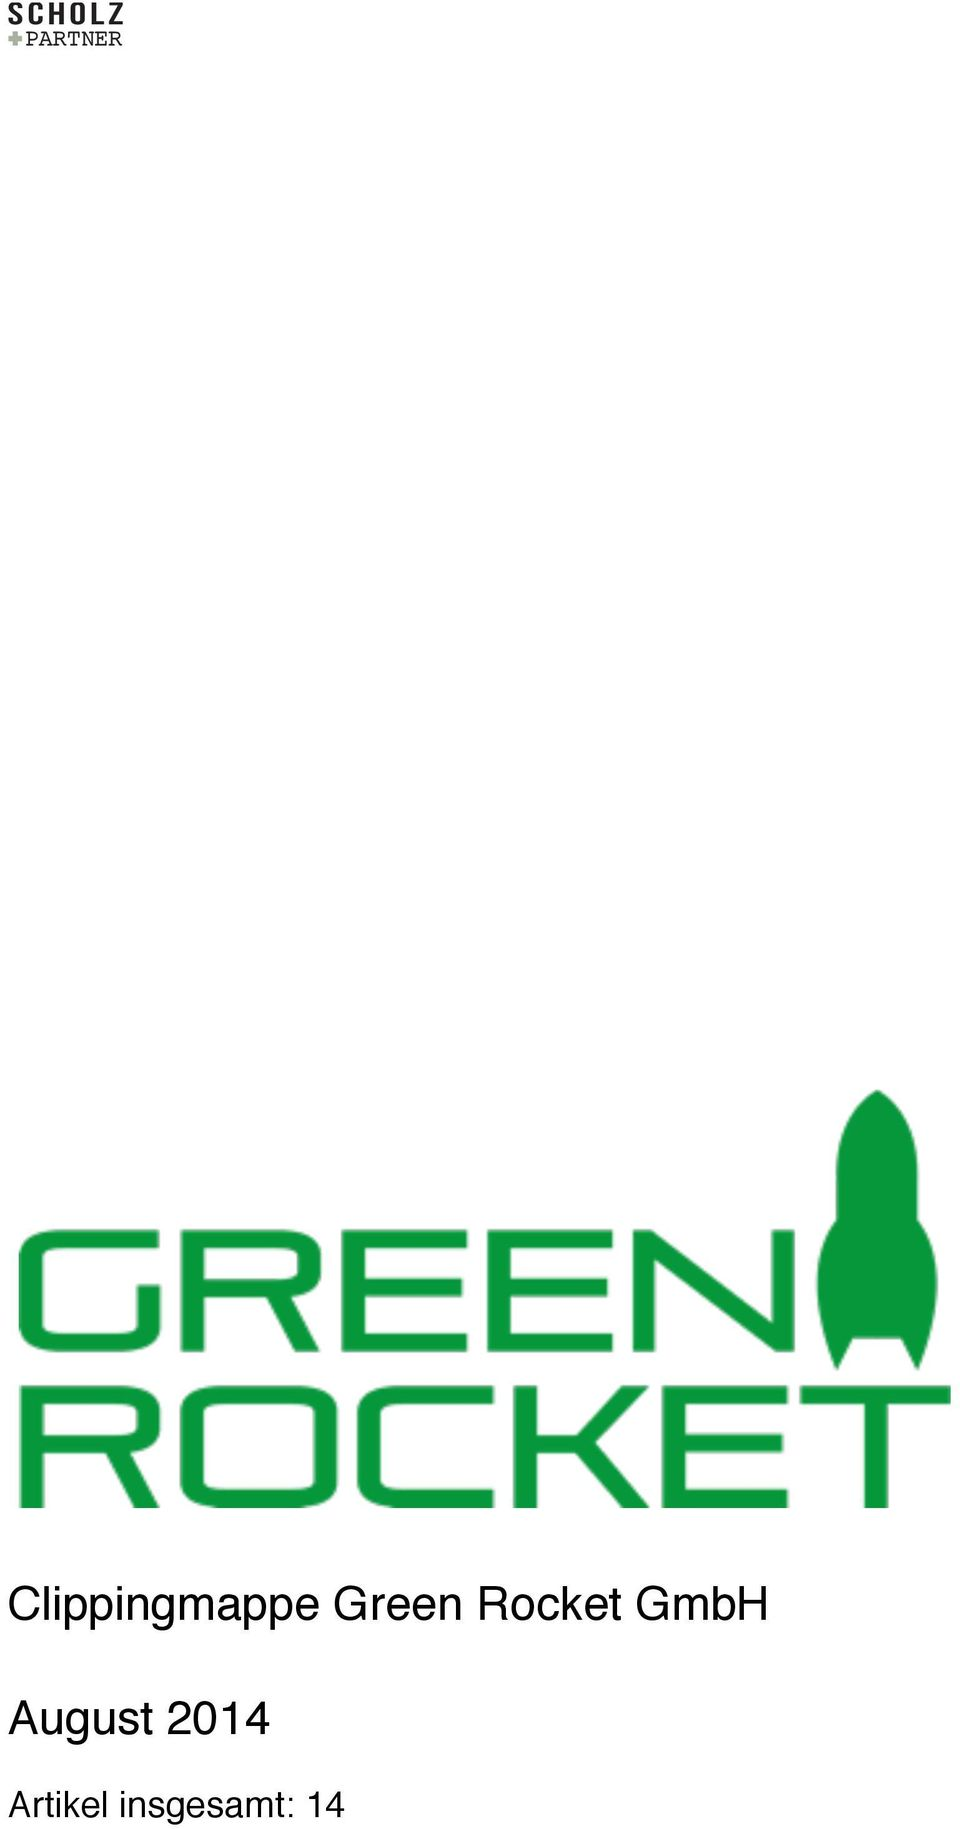 Green Rocket GmbH